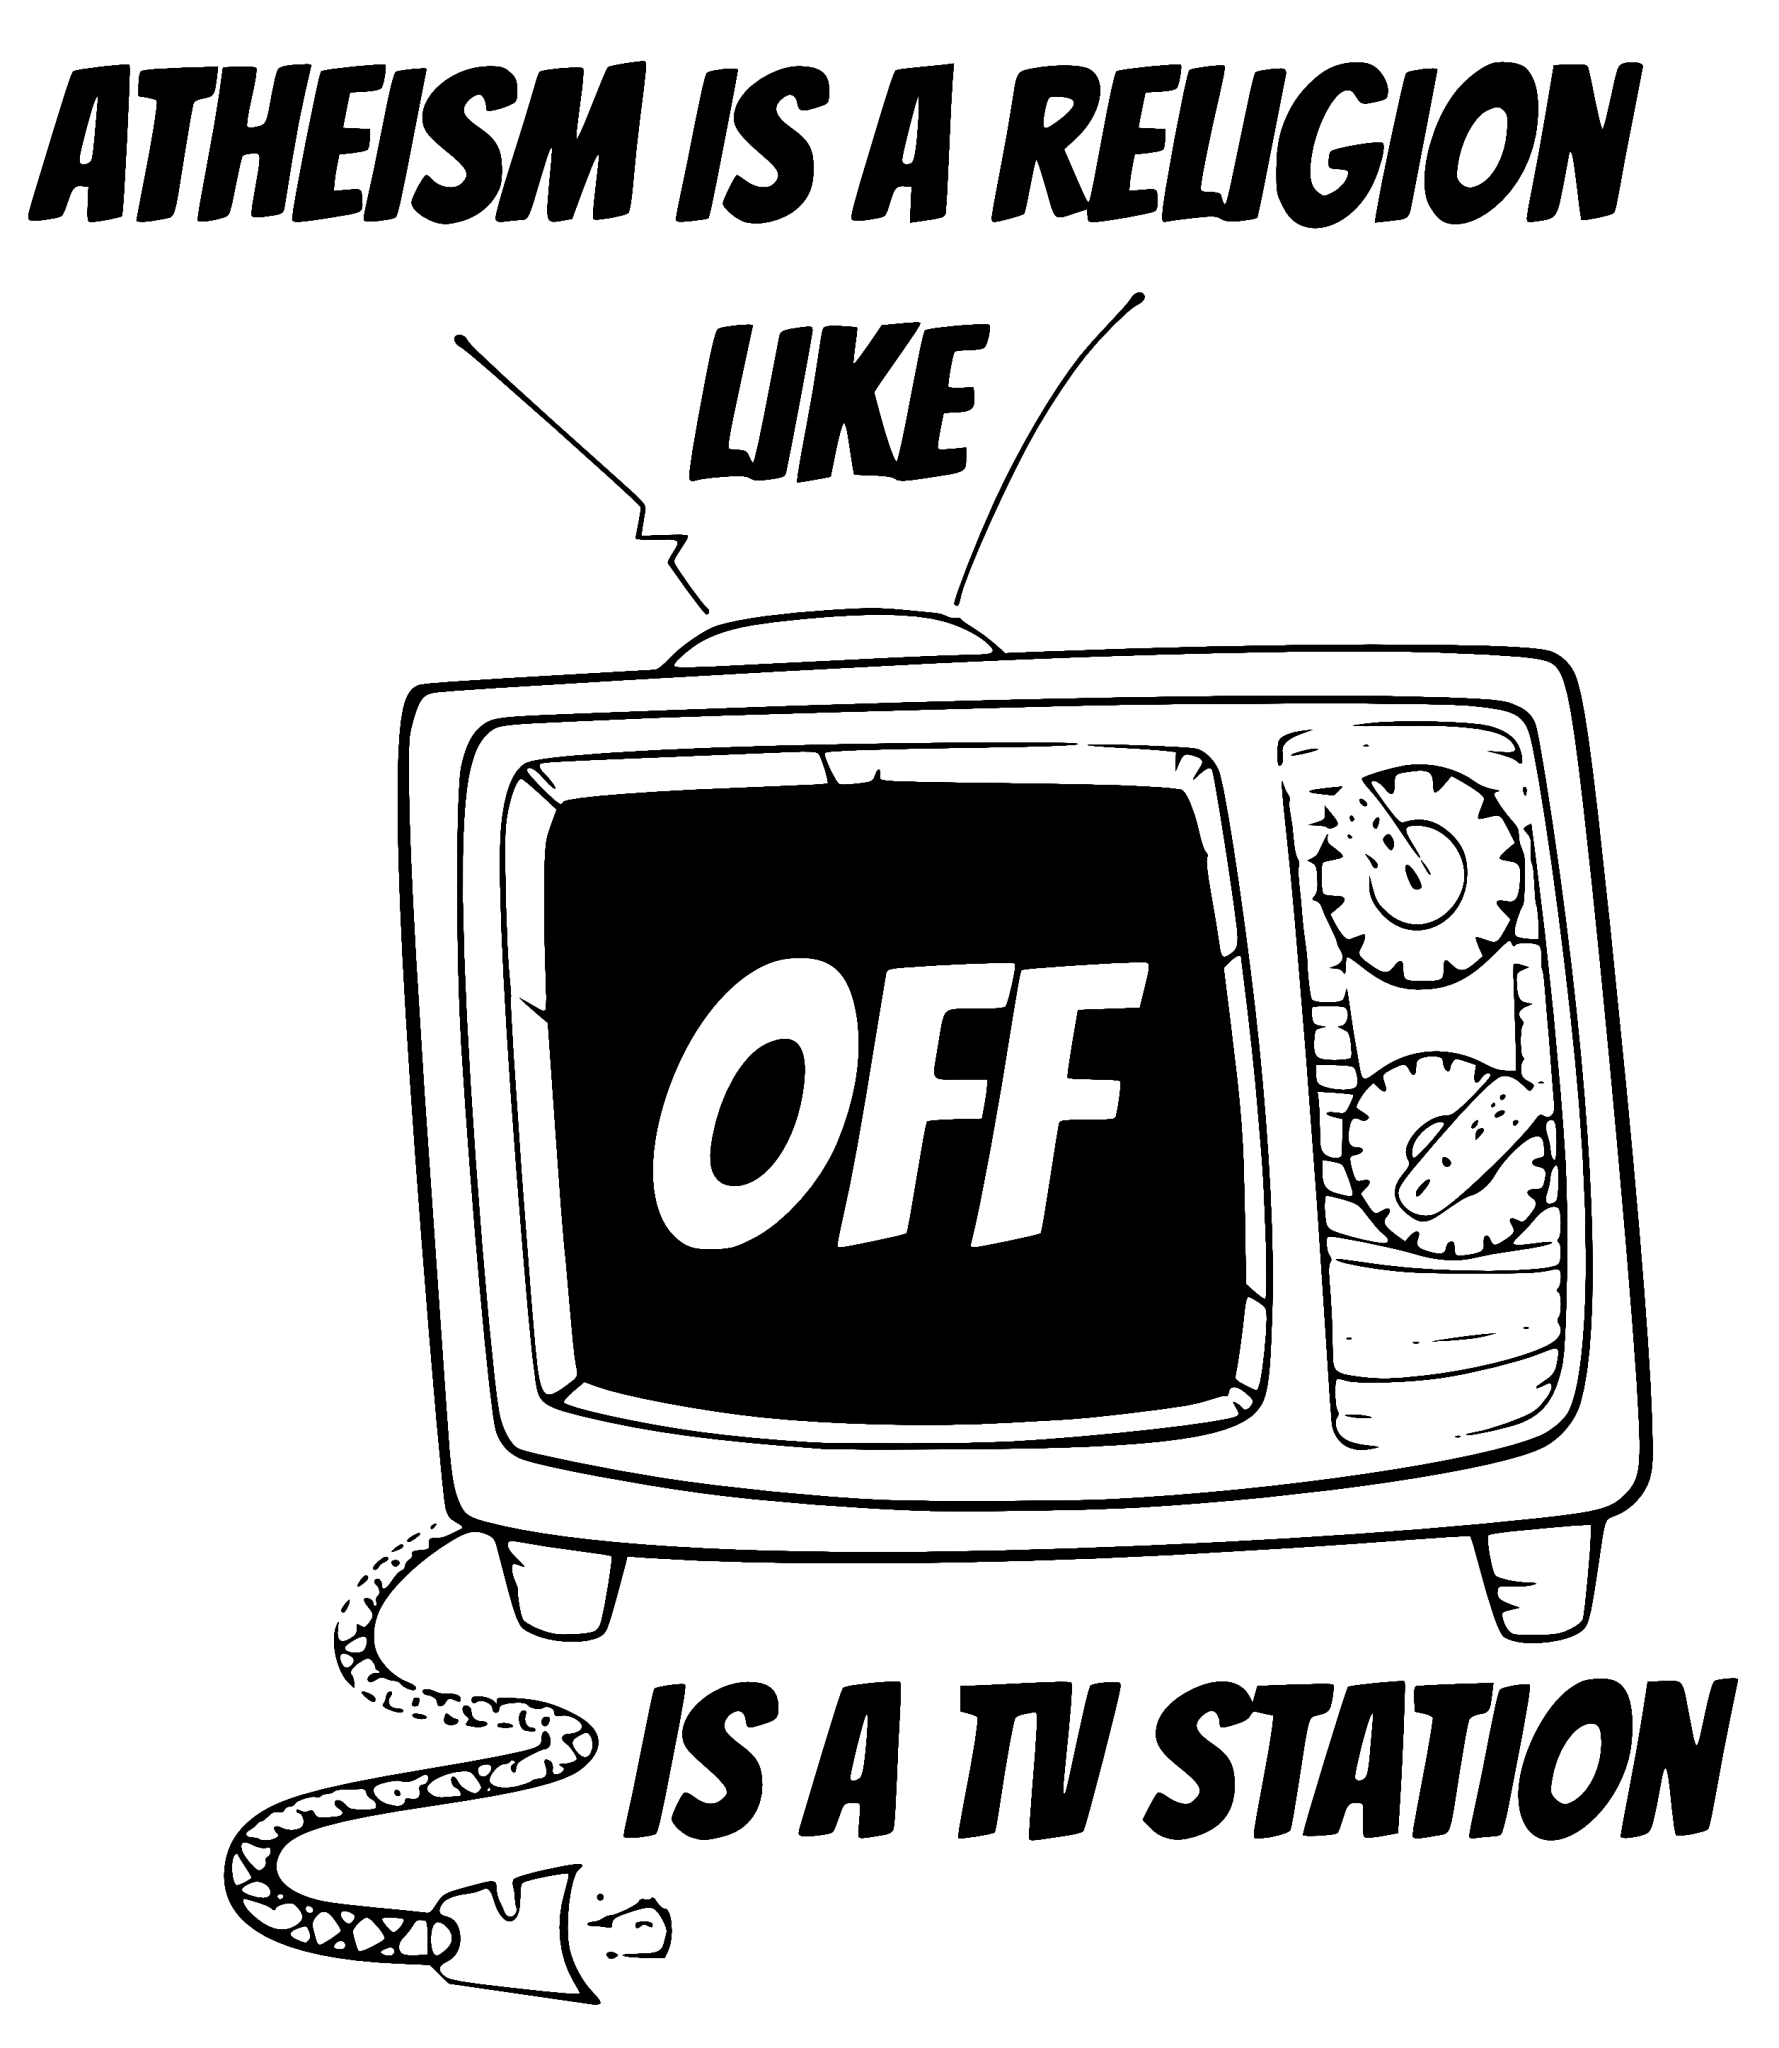 Atheism is a religion like OFF is a TV station tee shirt design